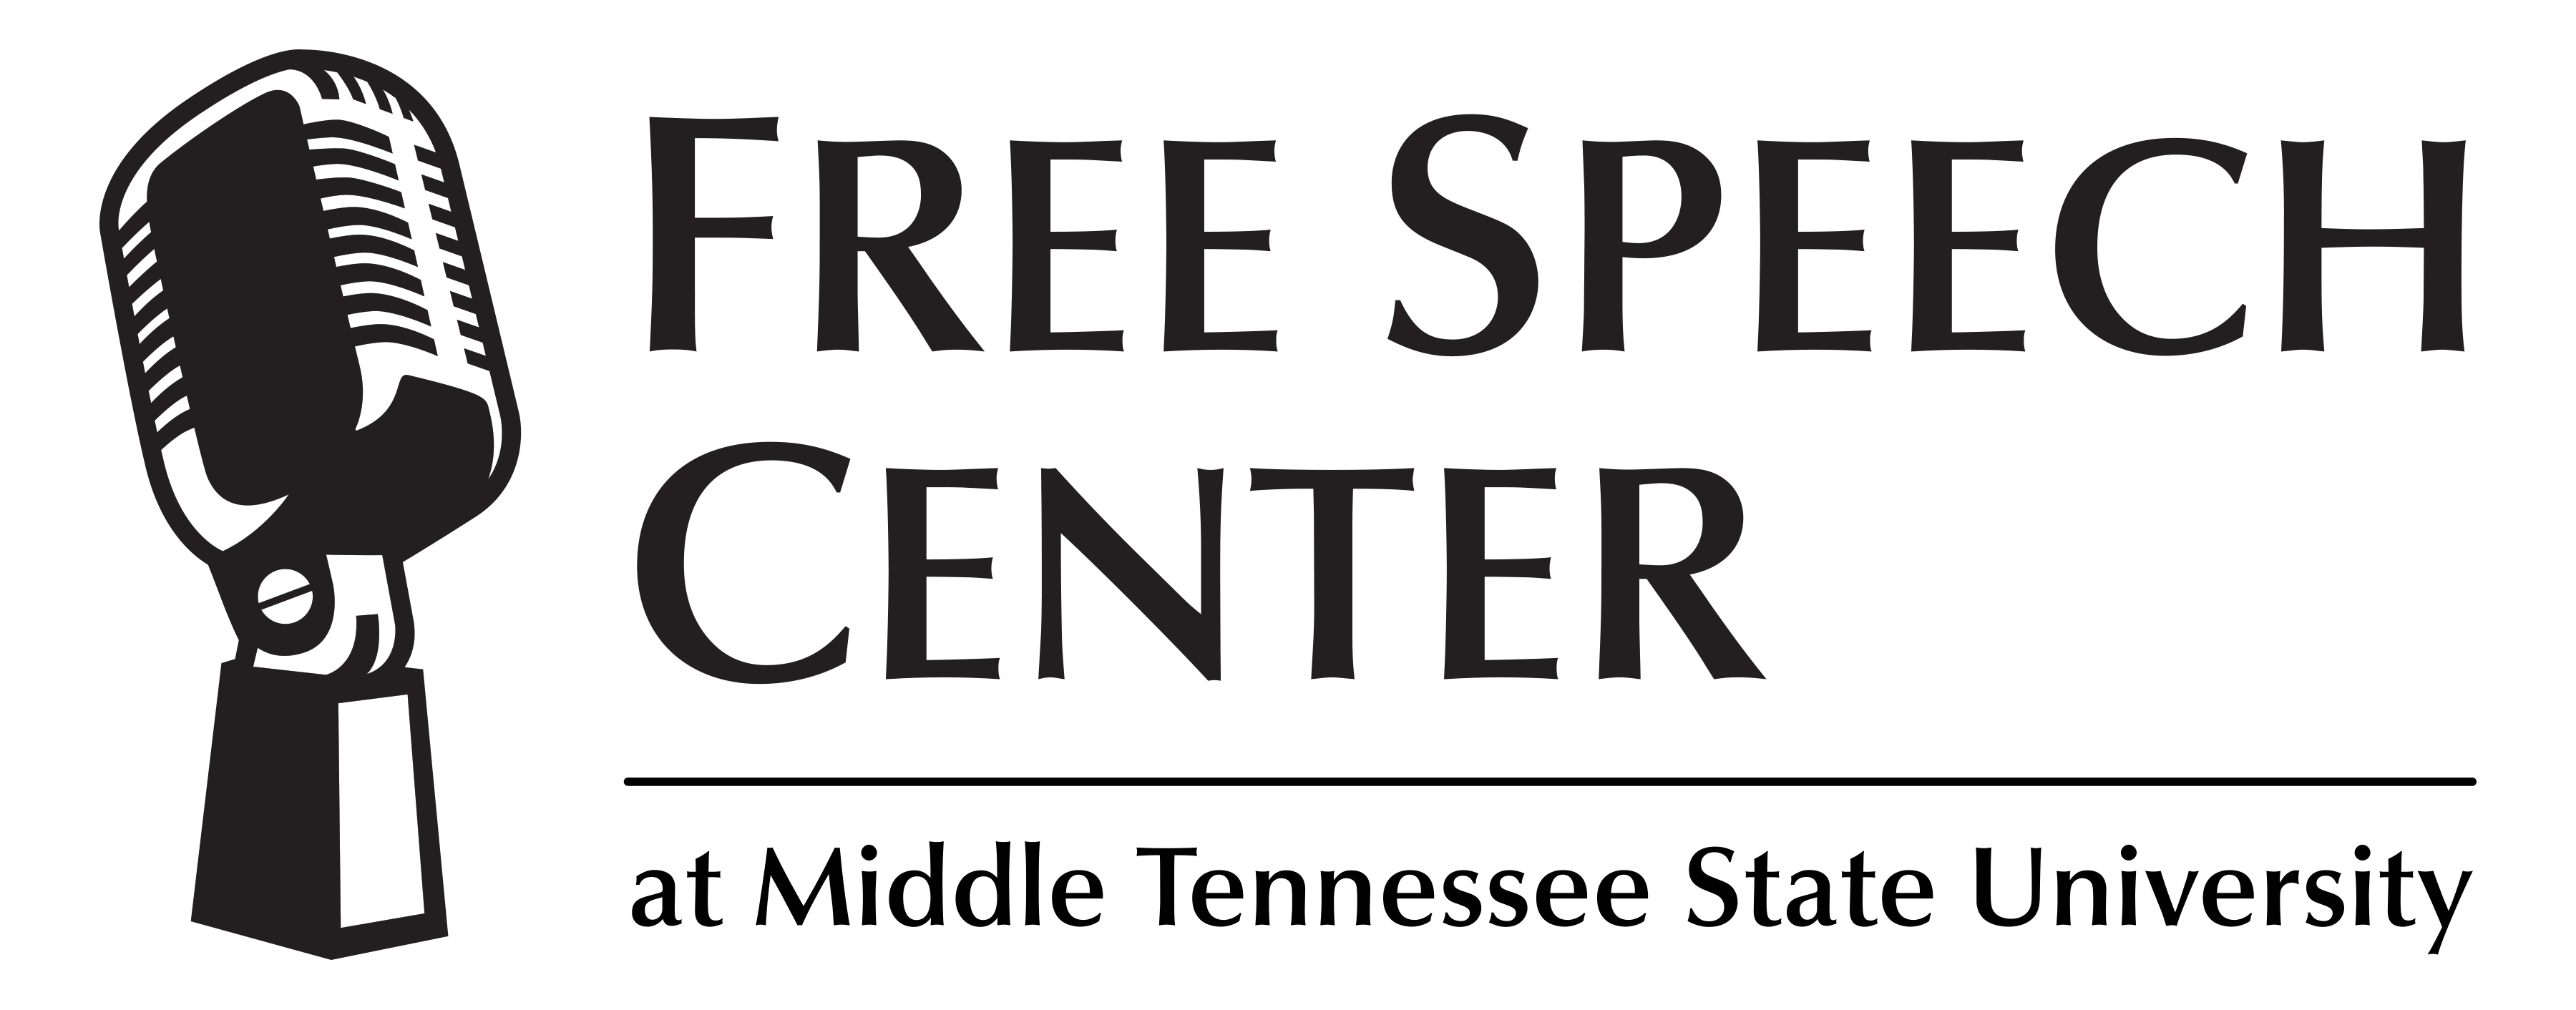 The Free Speech Center